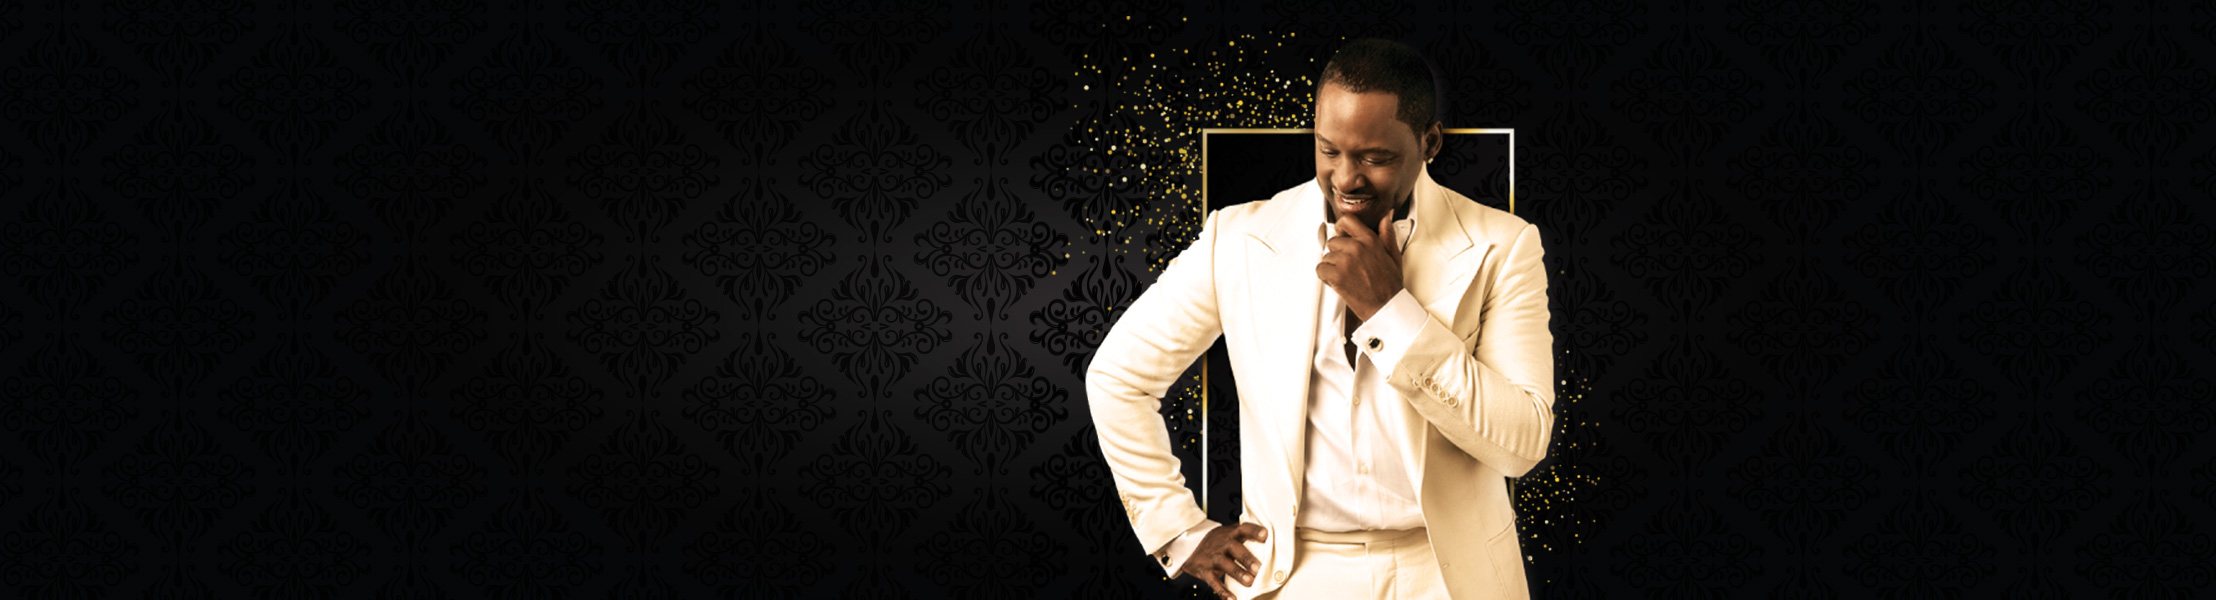 Cavalcade of the Stars - Johnny Gill